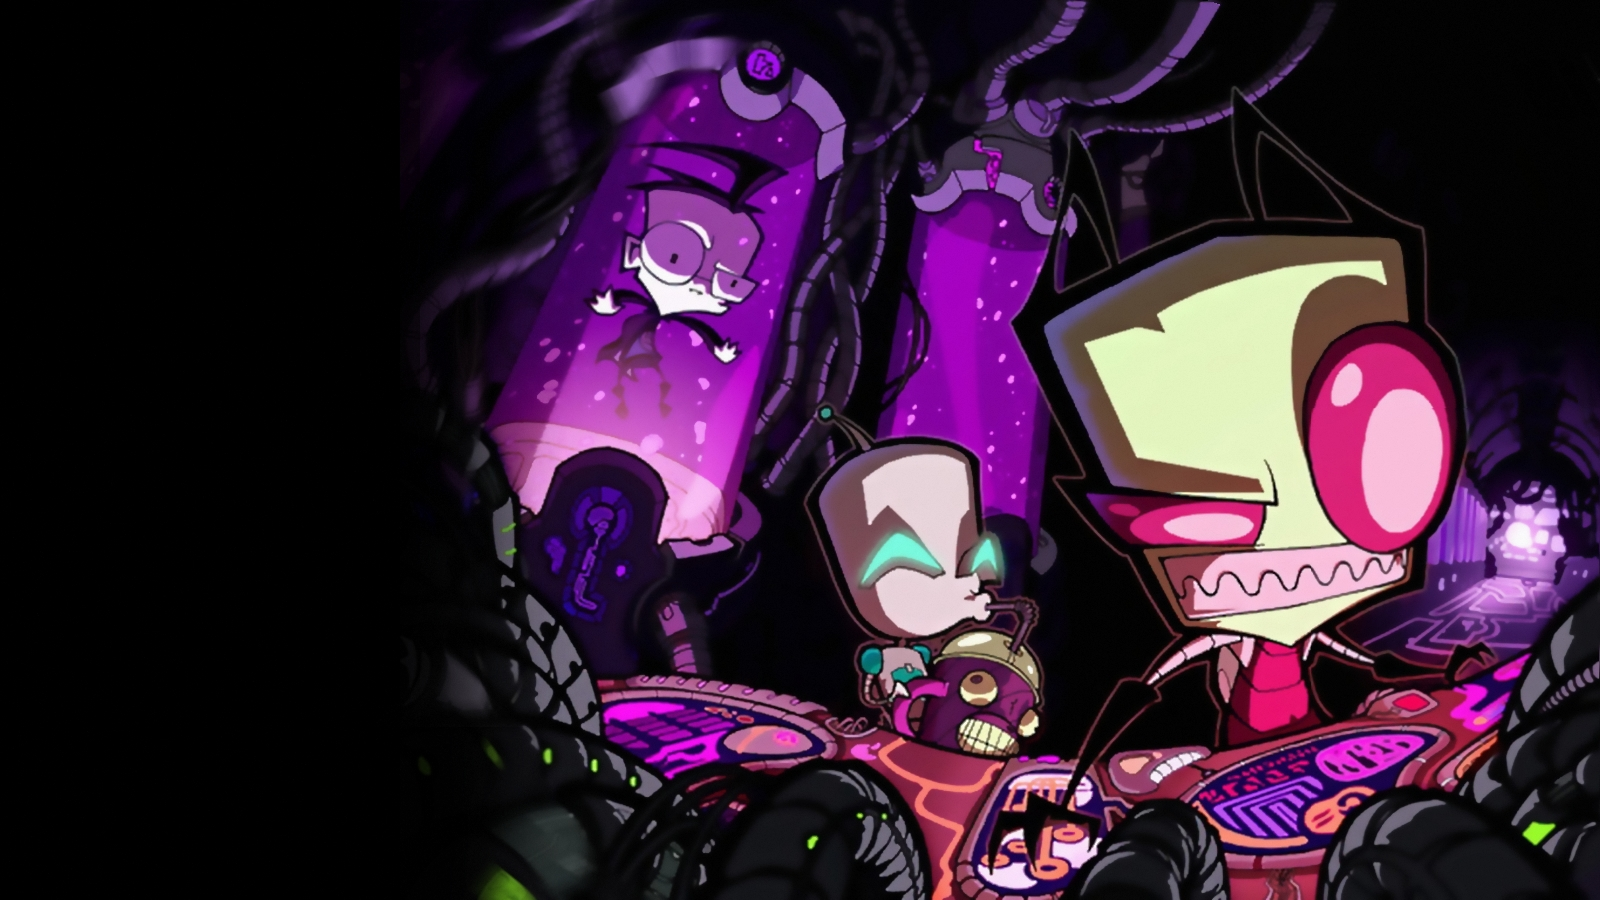 invader zim wallpaper for iphone